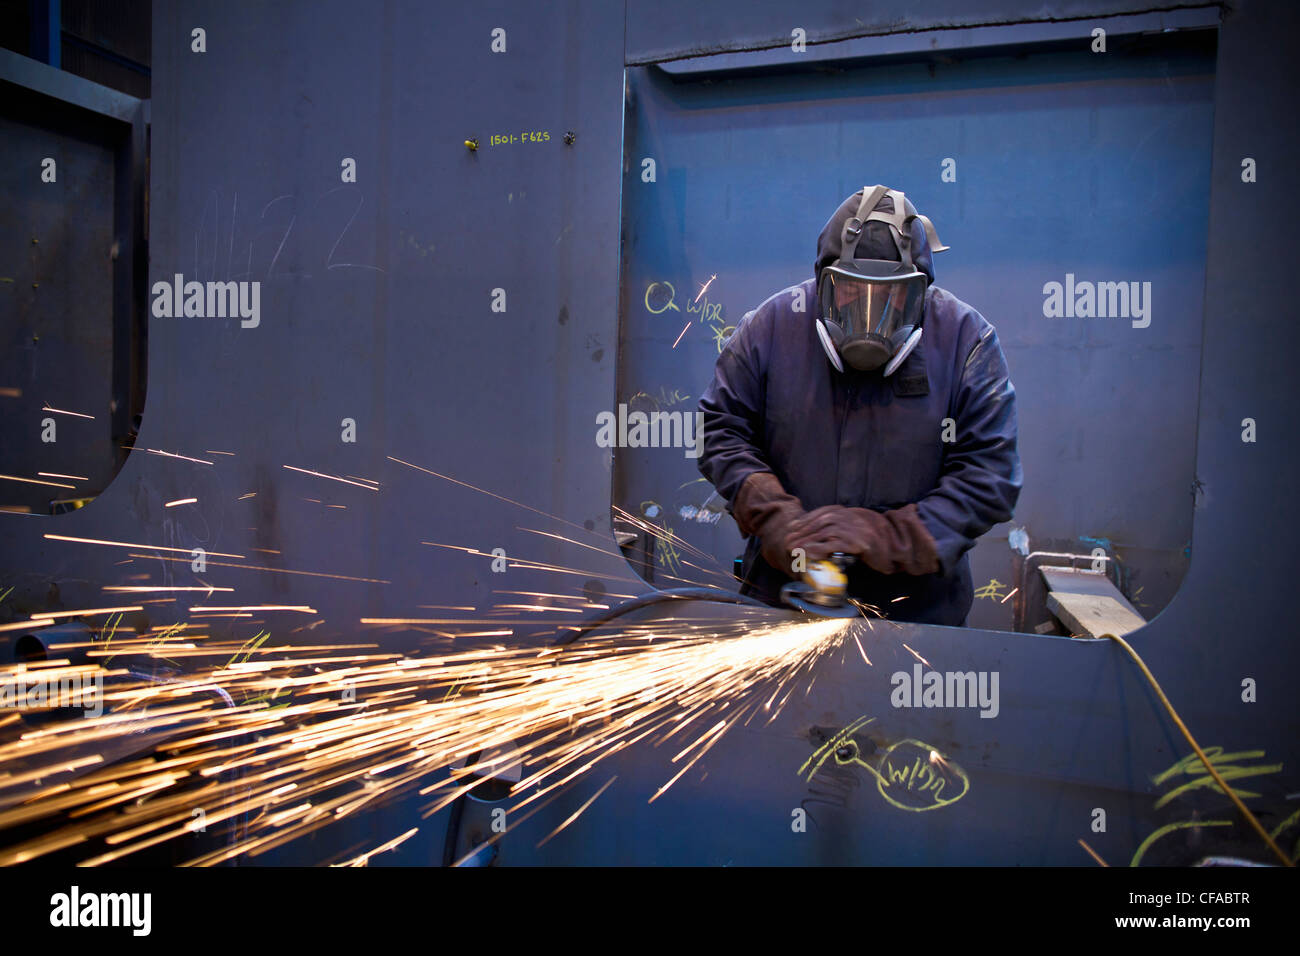 Steel cutter at work in shipyard - Stock Image